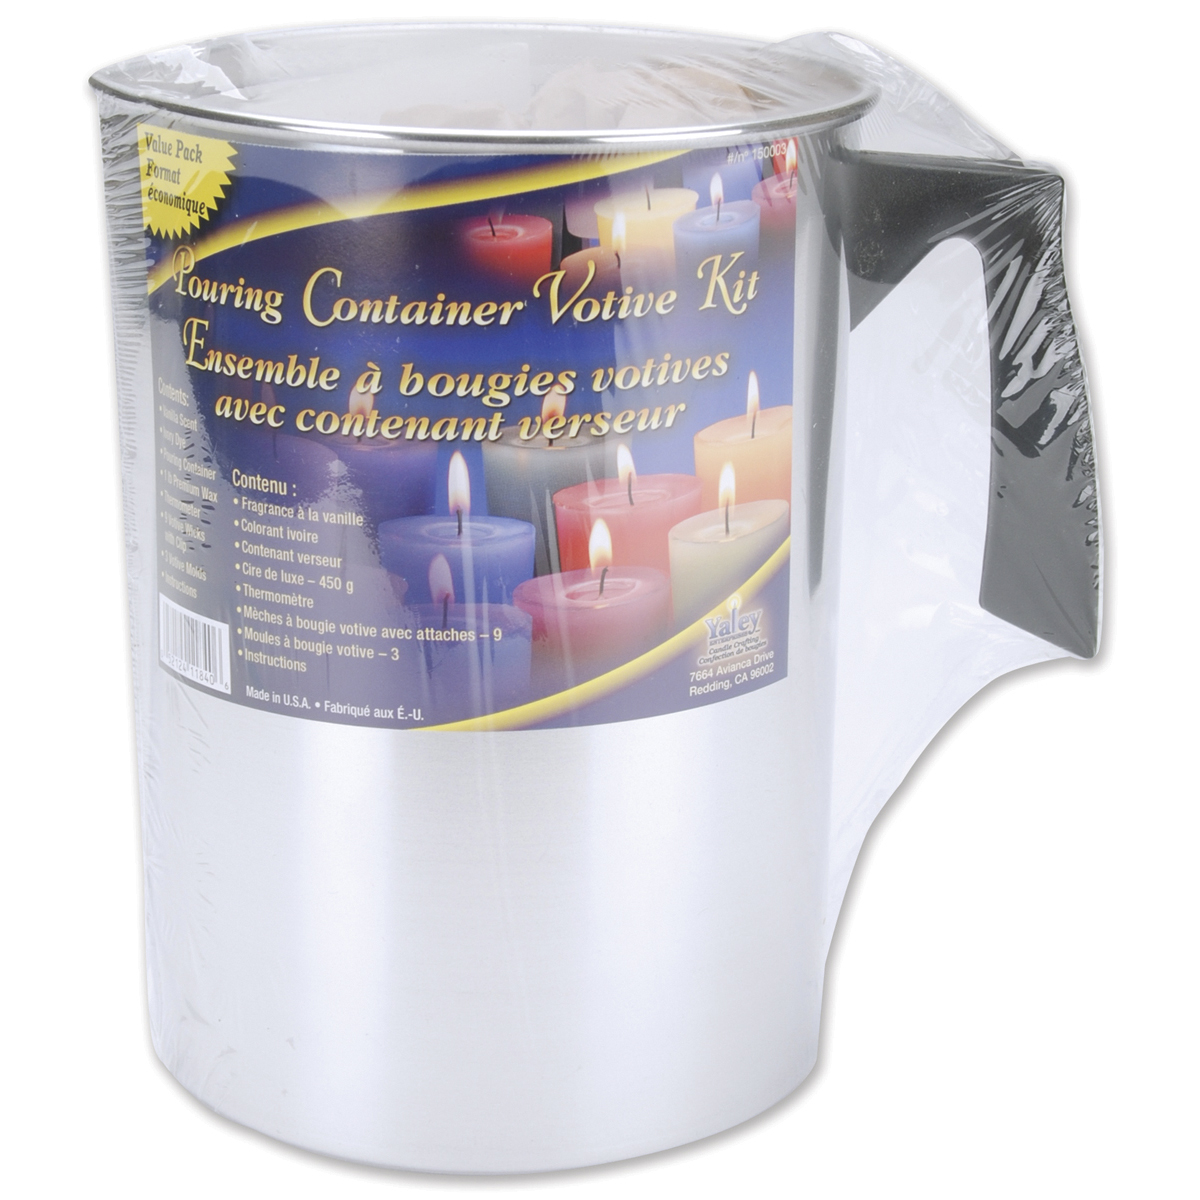 Pouring Container Votive Kit